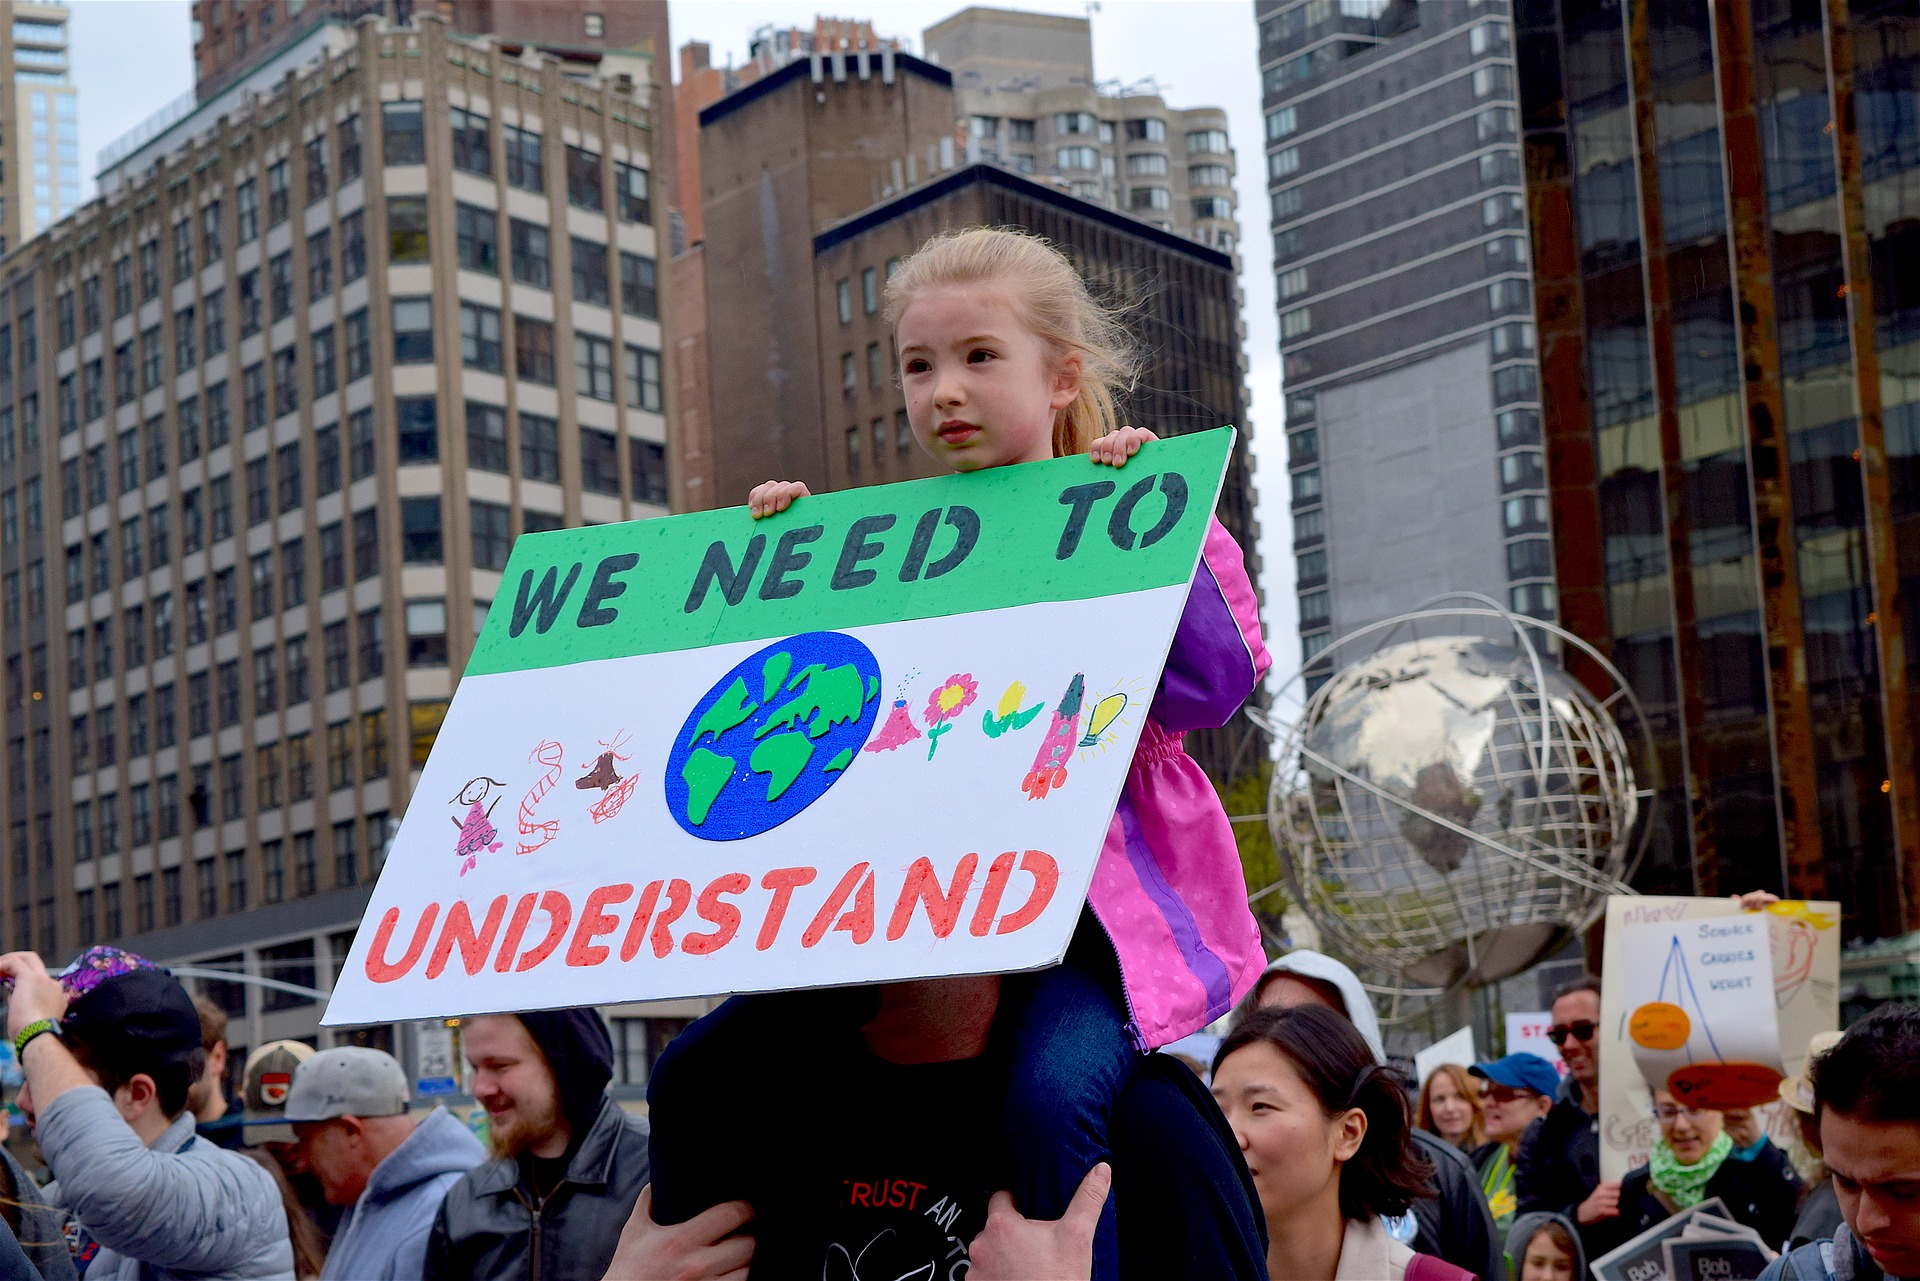 Raising awareness about the importance of global warming, science and earth sustainability.